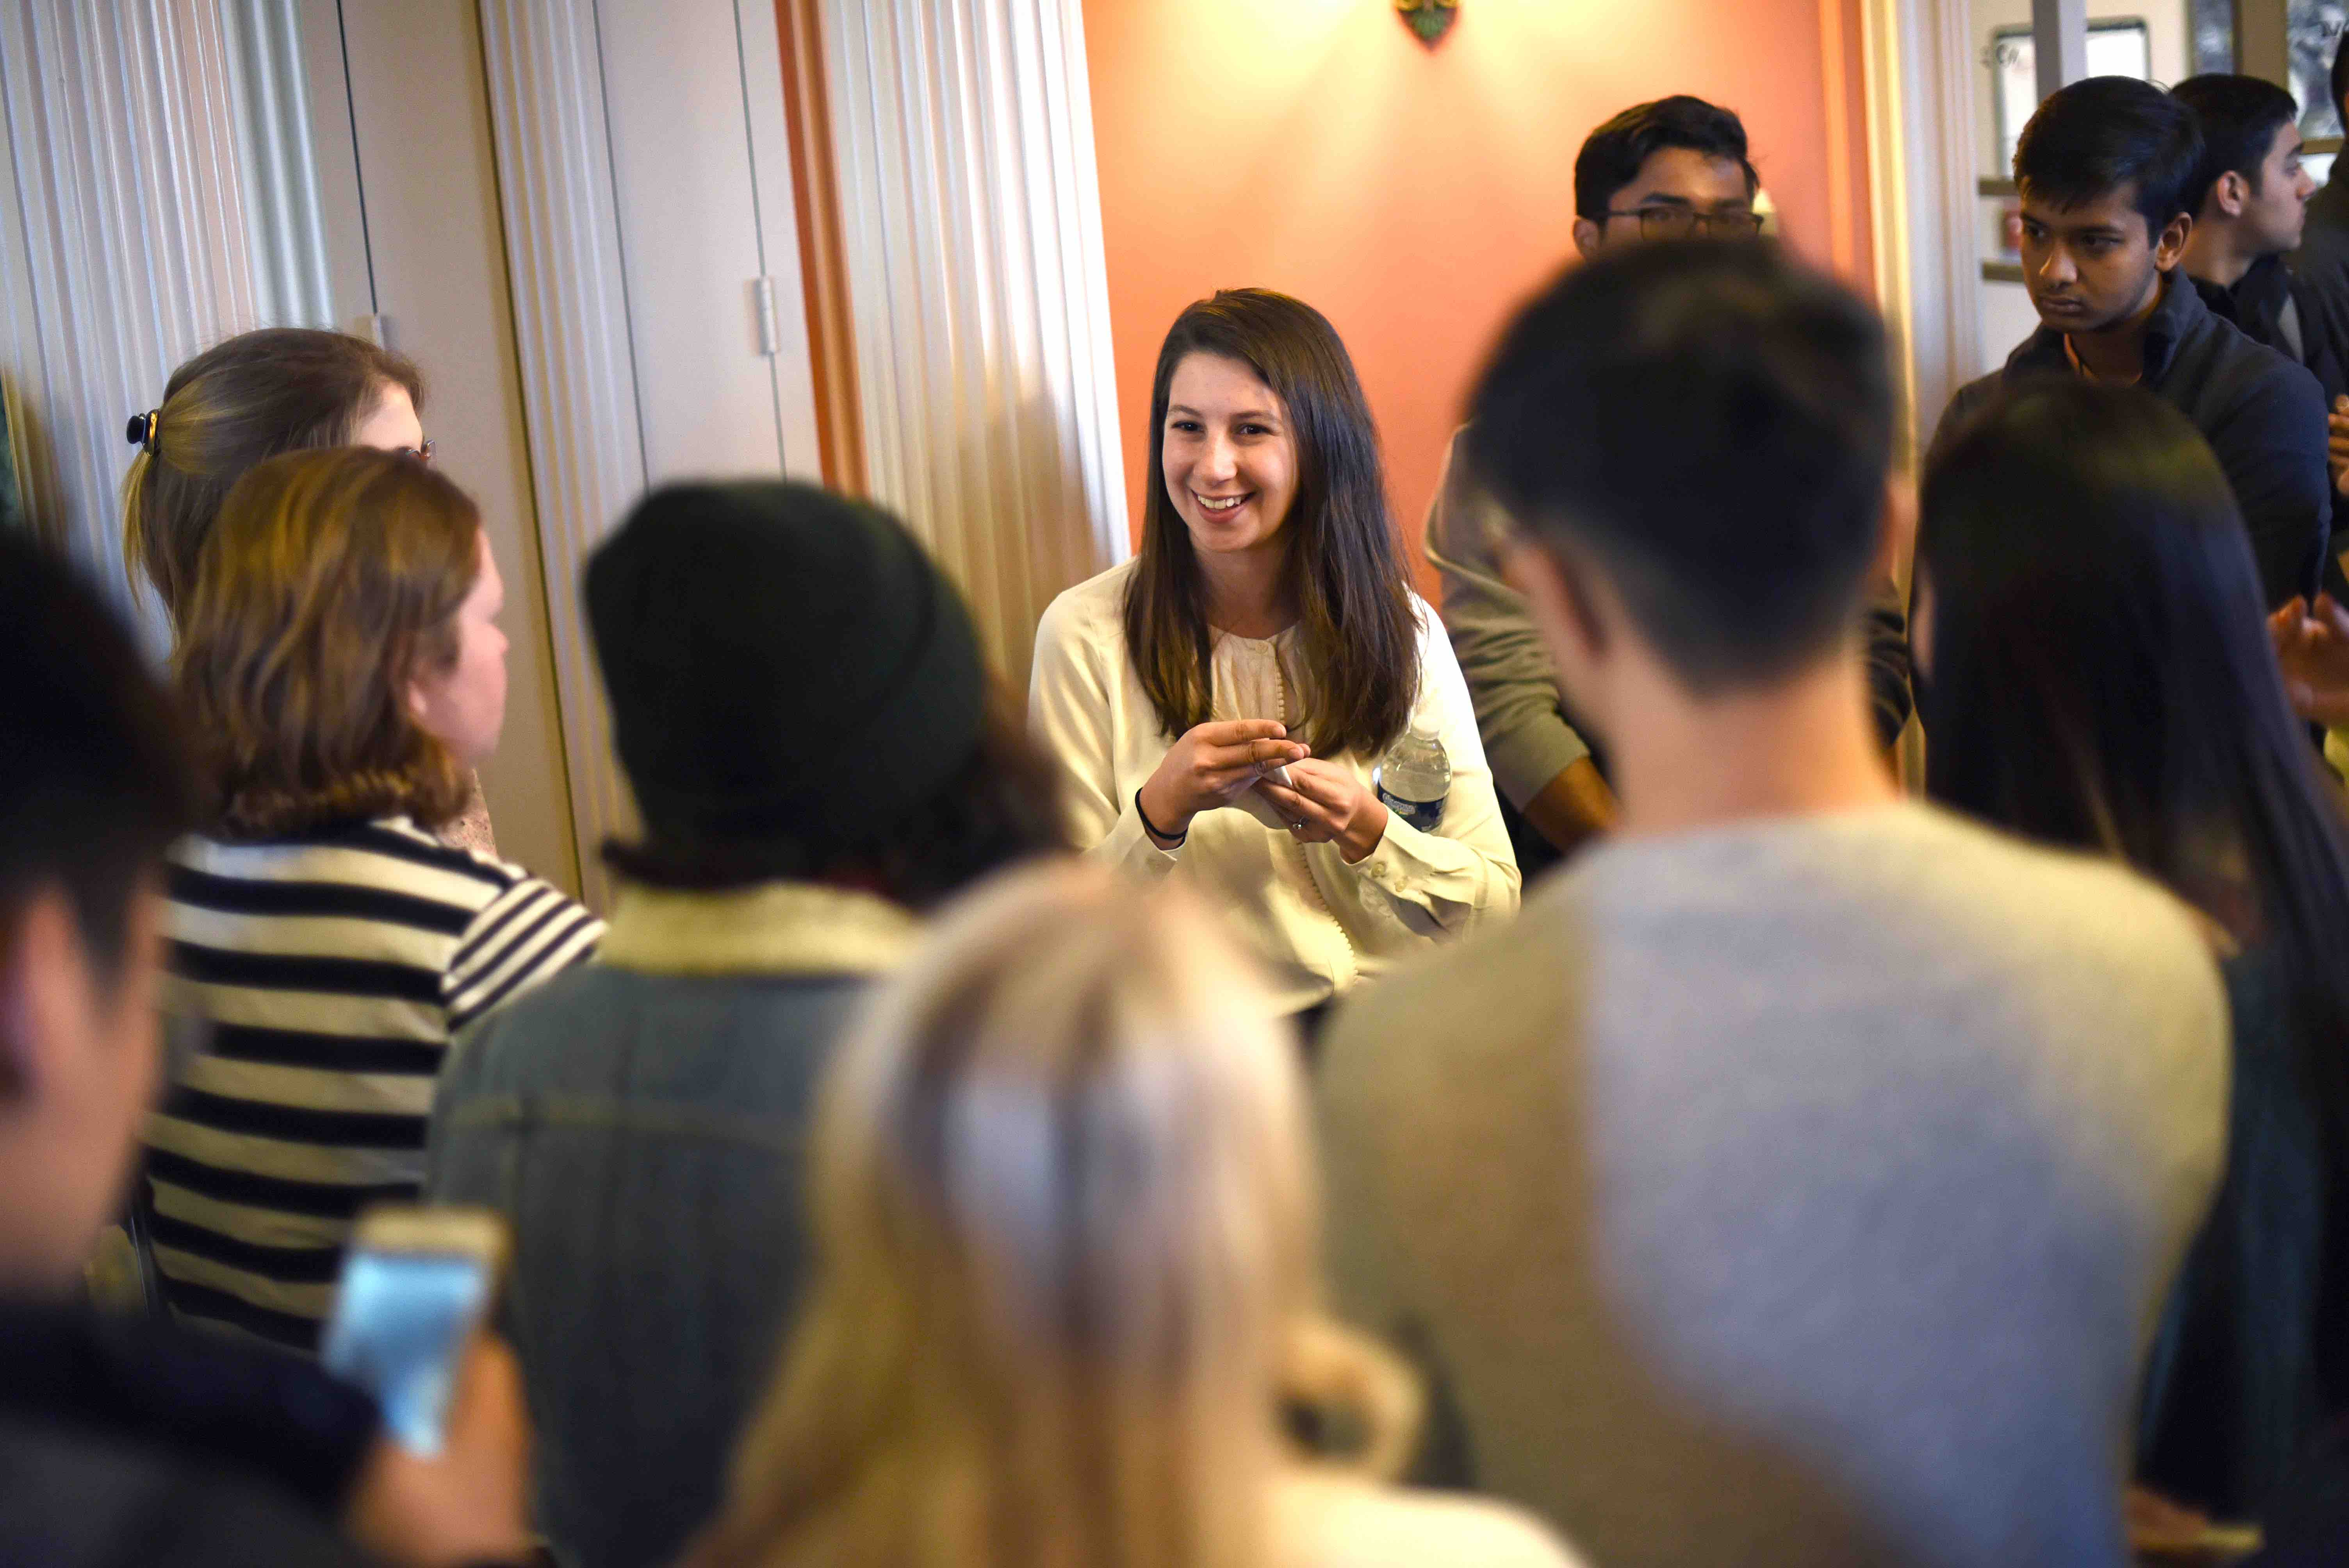 Dr. Katie Bouman chats with a crowd of students